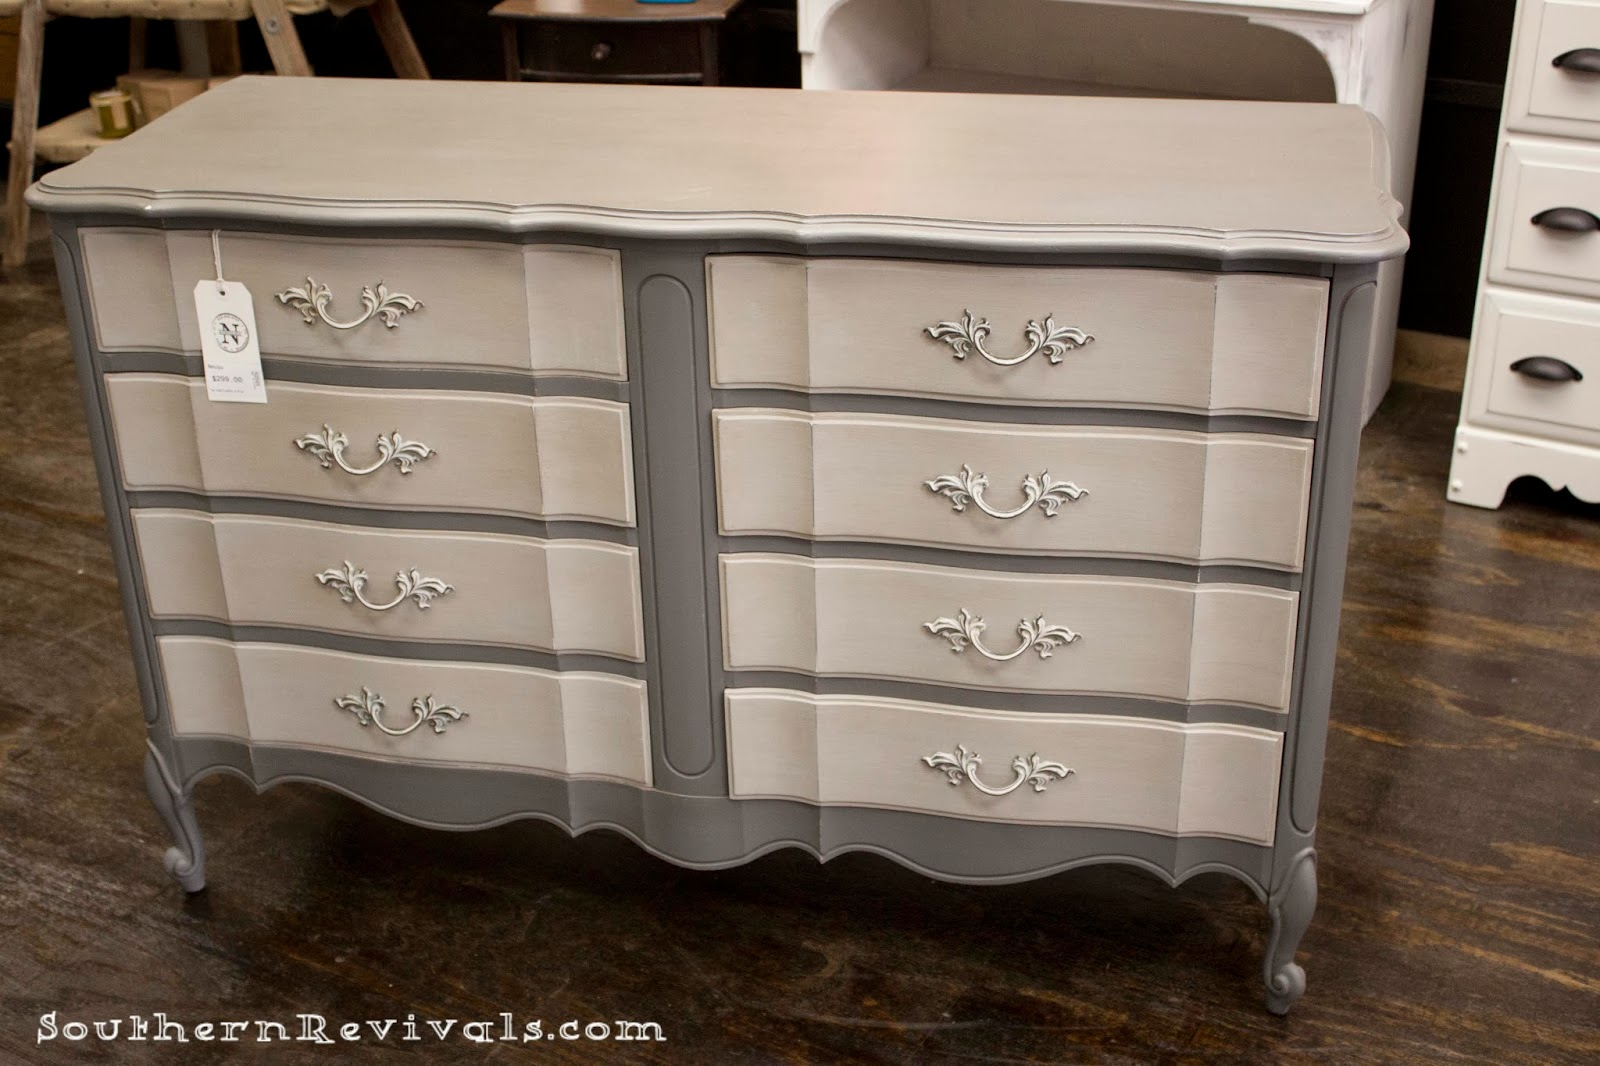 Two Tone Painted Furniture Antique For The Love Of Two Grays Twotoned Gray Dresser Southern Revivals For The Love Of Two Grays Twotoned Gray Dresser Southern Revivals